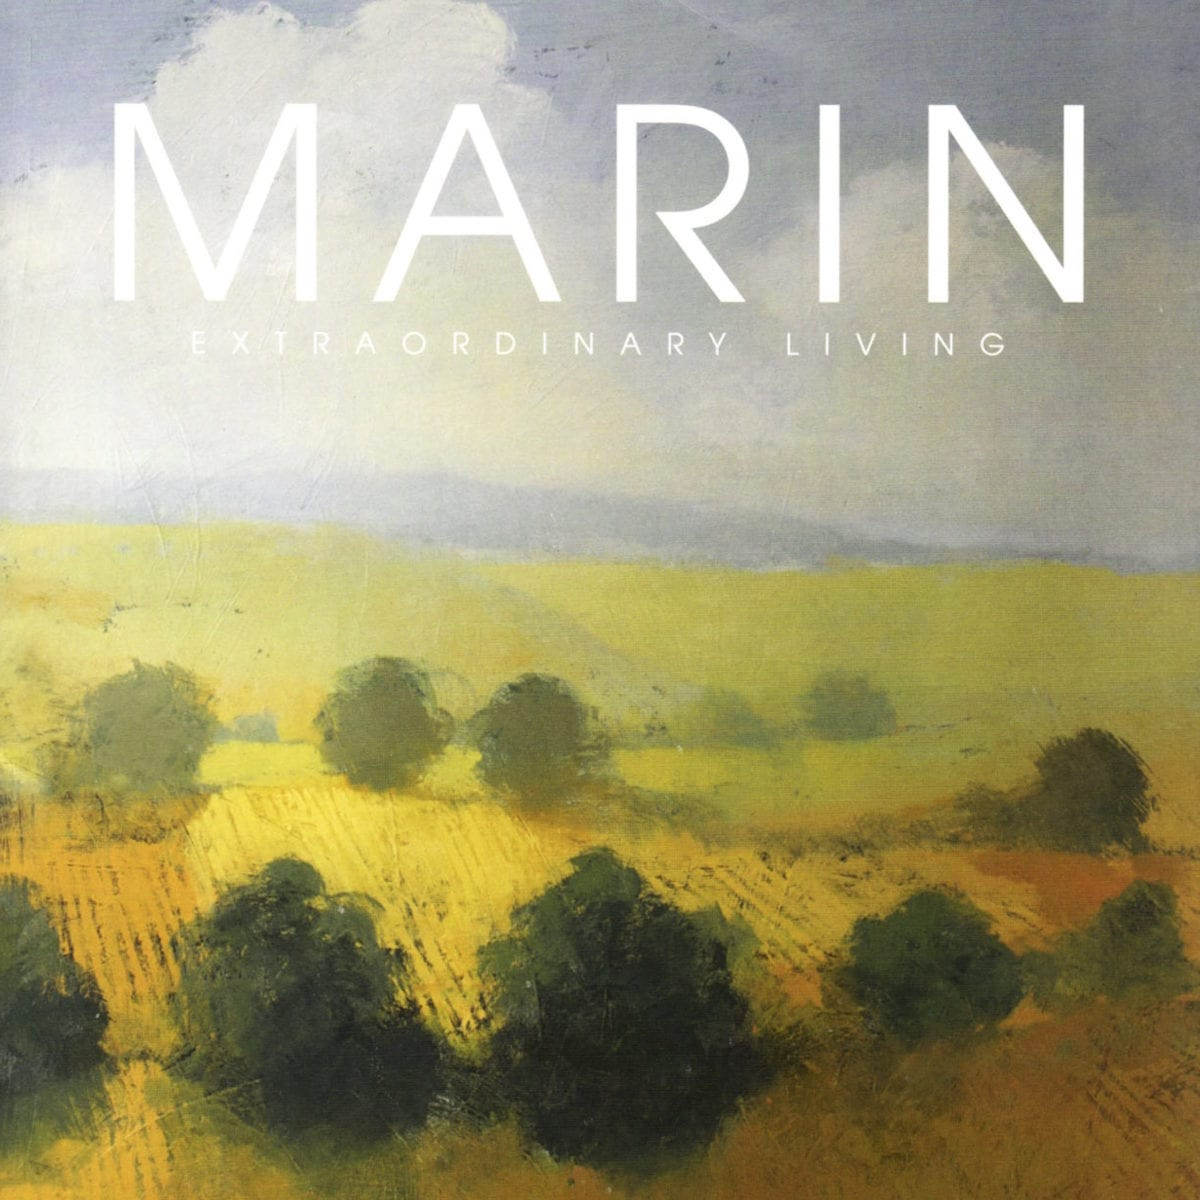 Marin Extraordinary Living magazine cover.